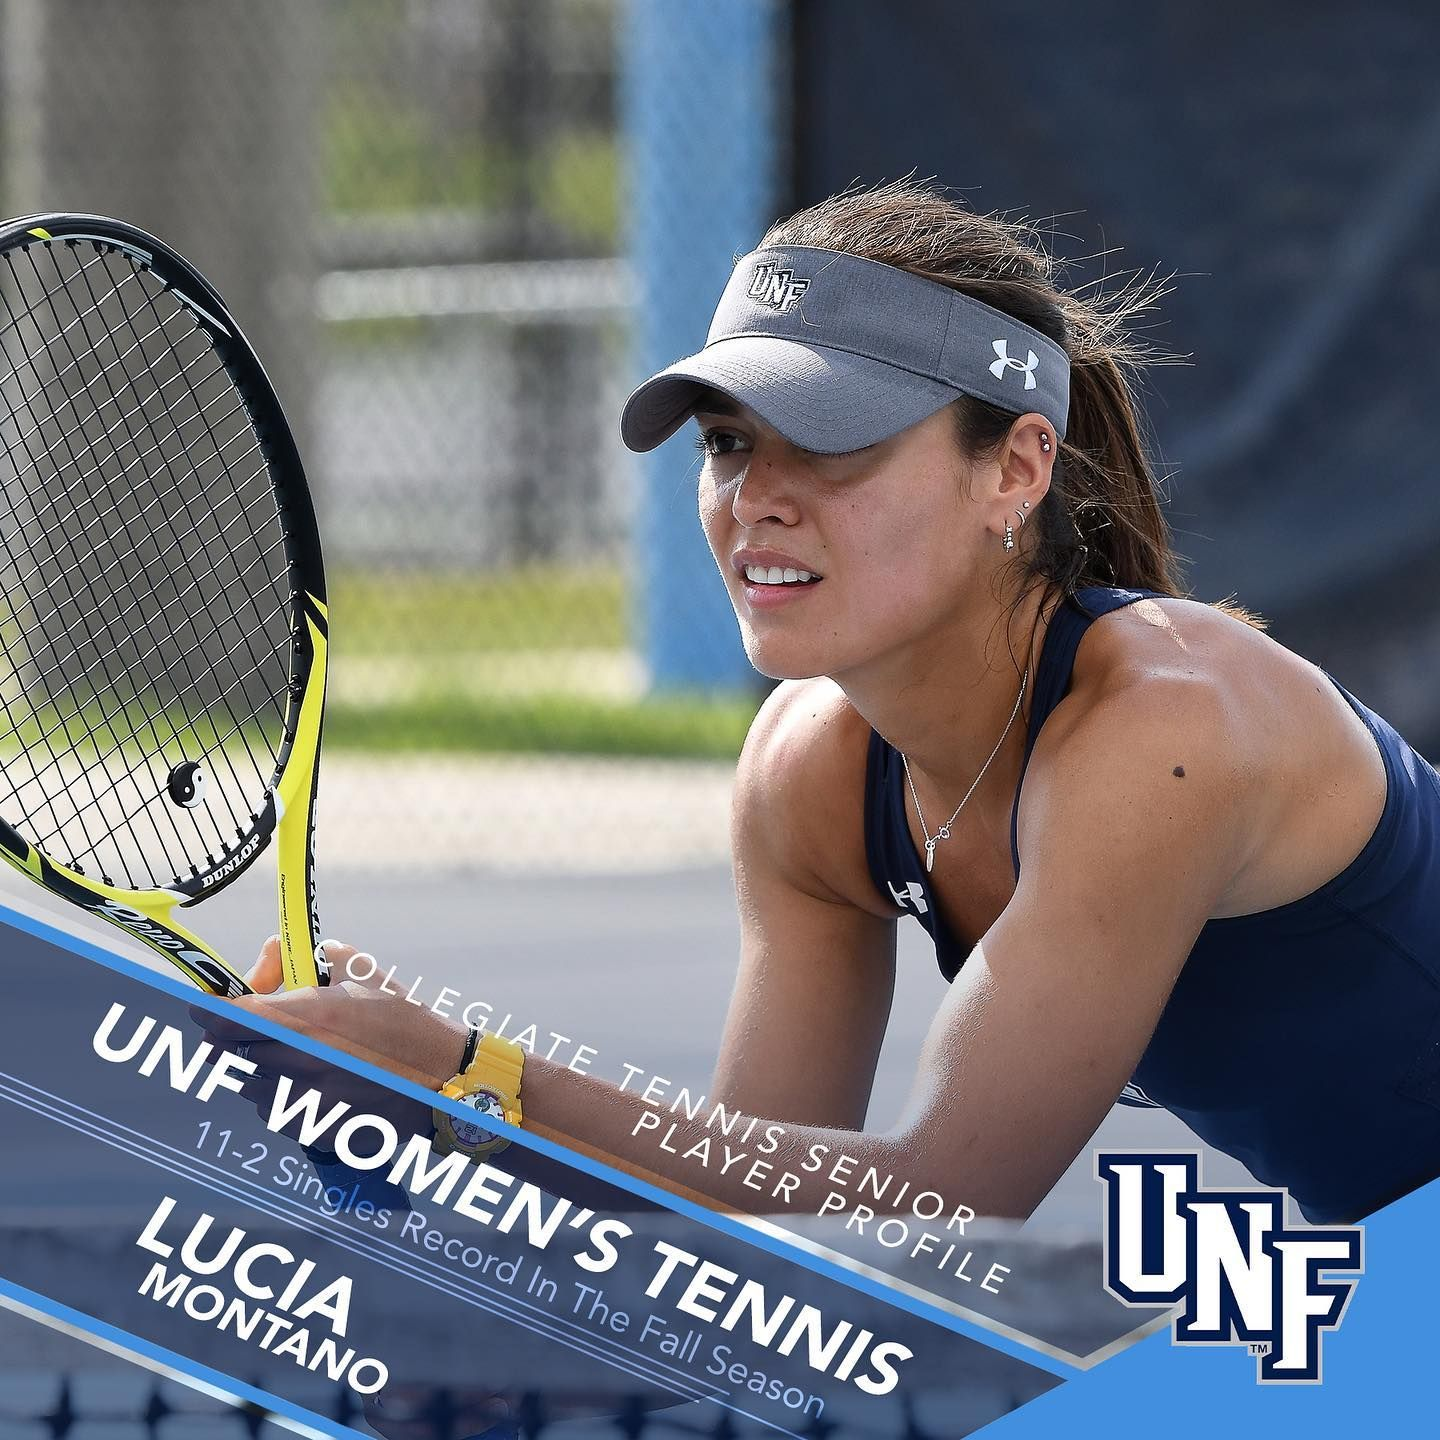 Stats Ft Luciamontanop 11 2 Singles Record 12 3 Doubles Record With Partner Ana Paula Melilo Won The Audra Bra In 2020 Womens Tennis Tennis Players Single Record